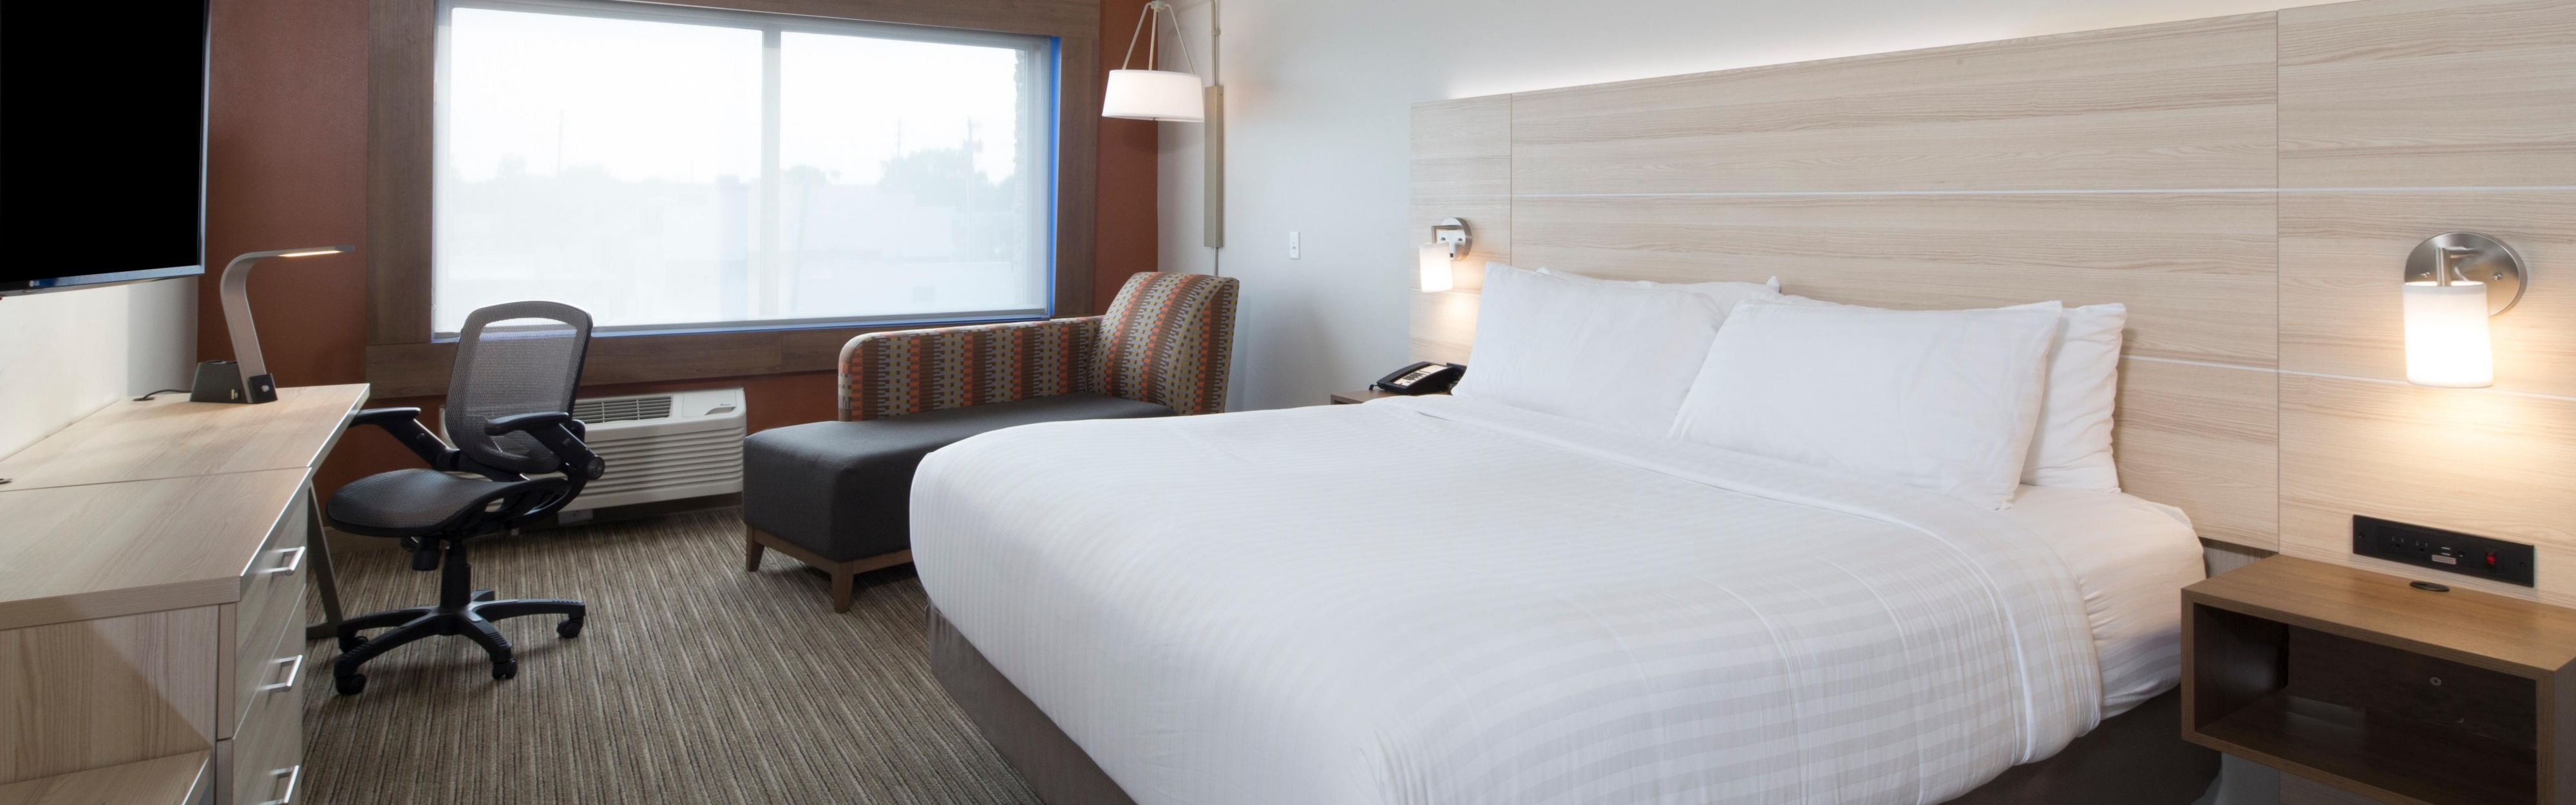 Holiday Inn Express & Suites Alpena - Downtown image 1